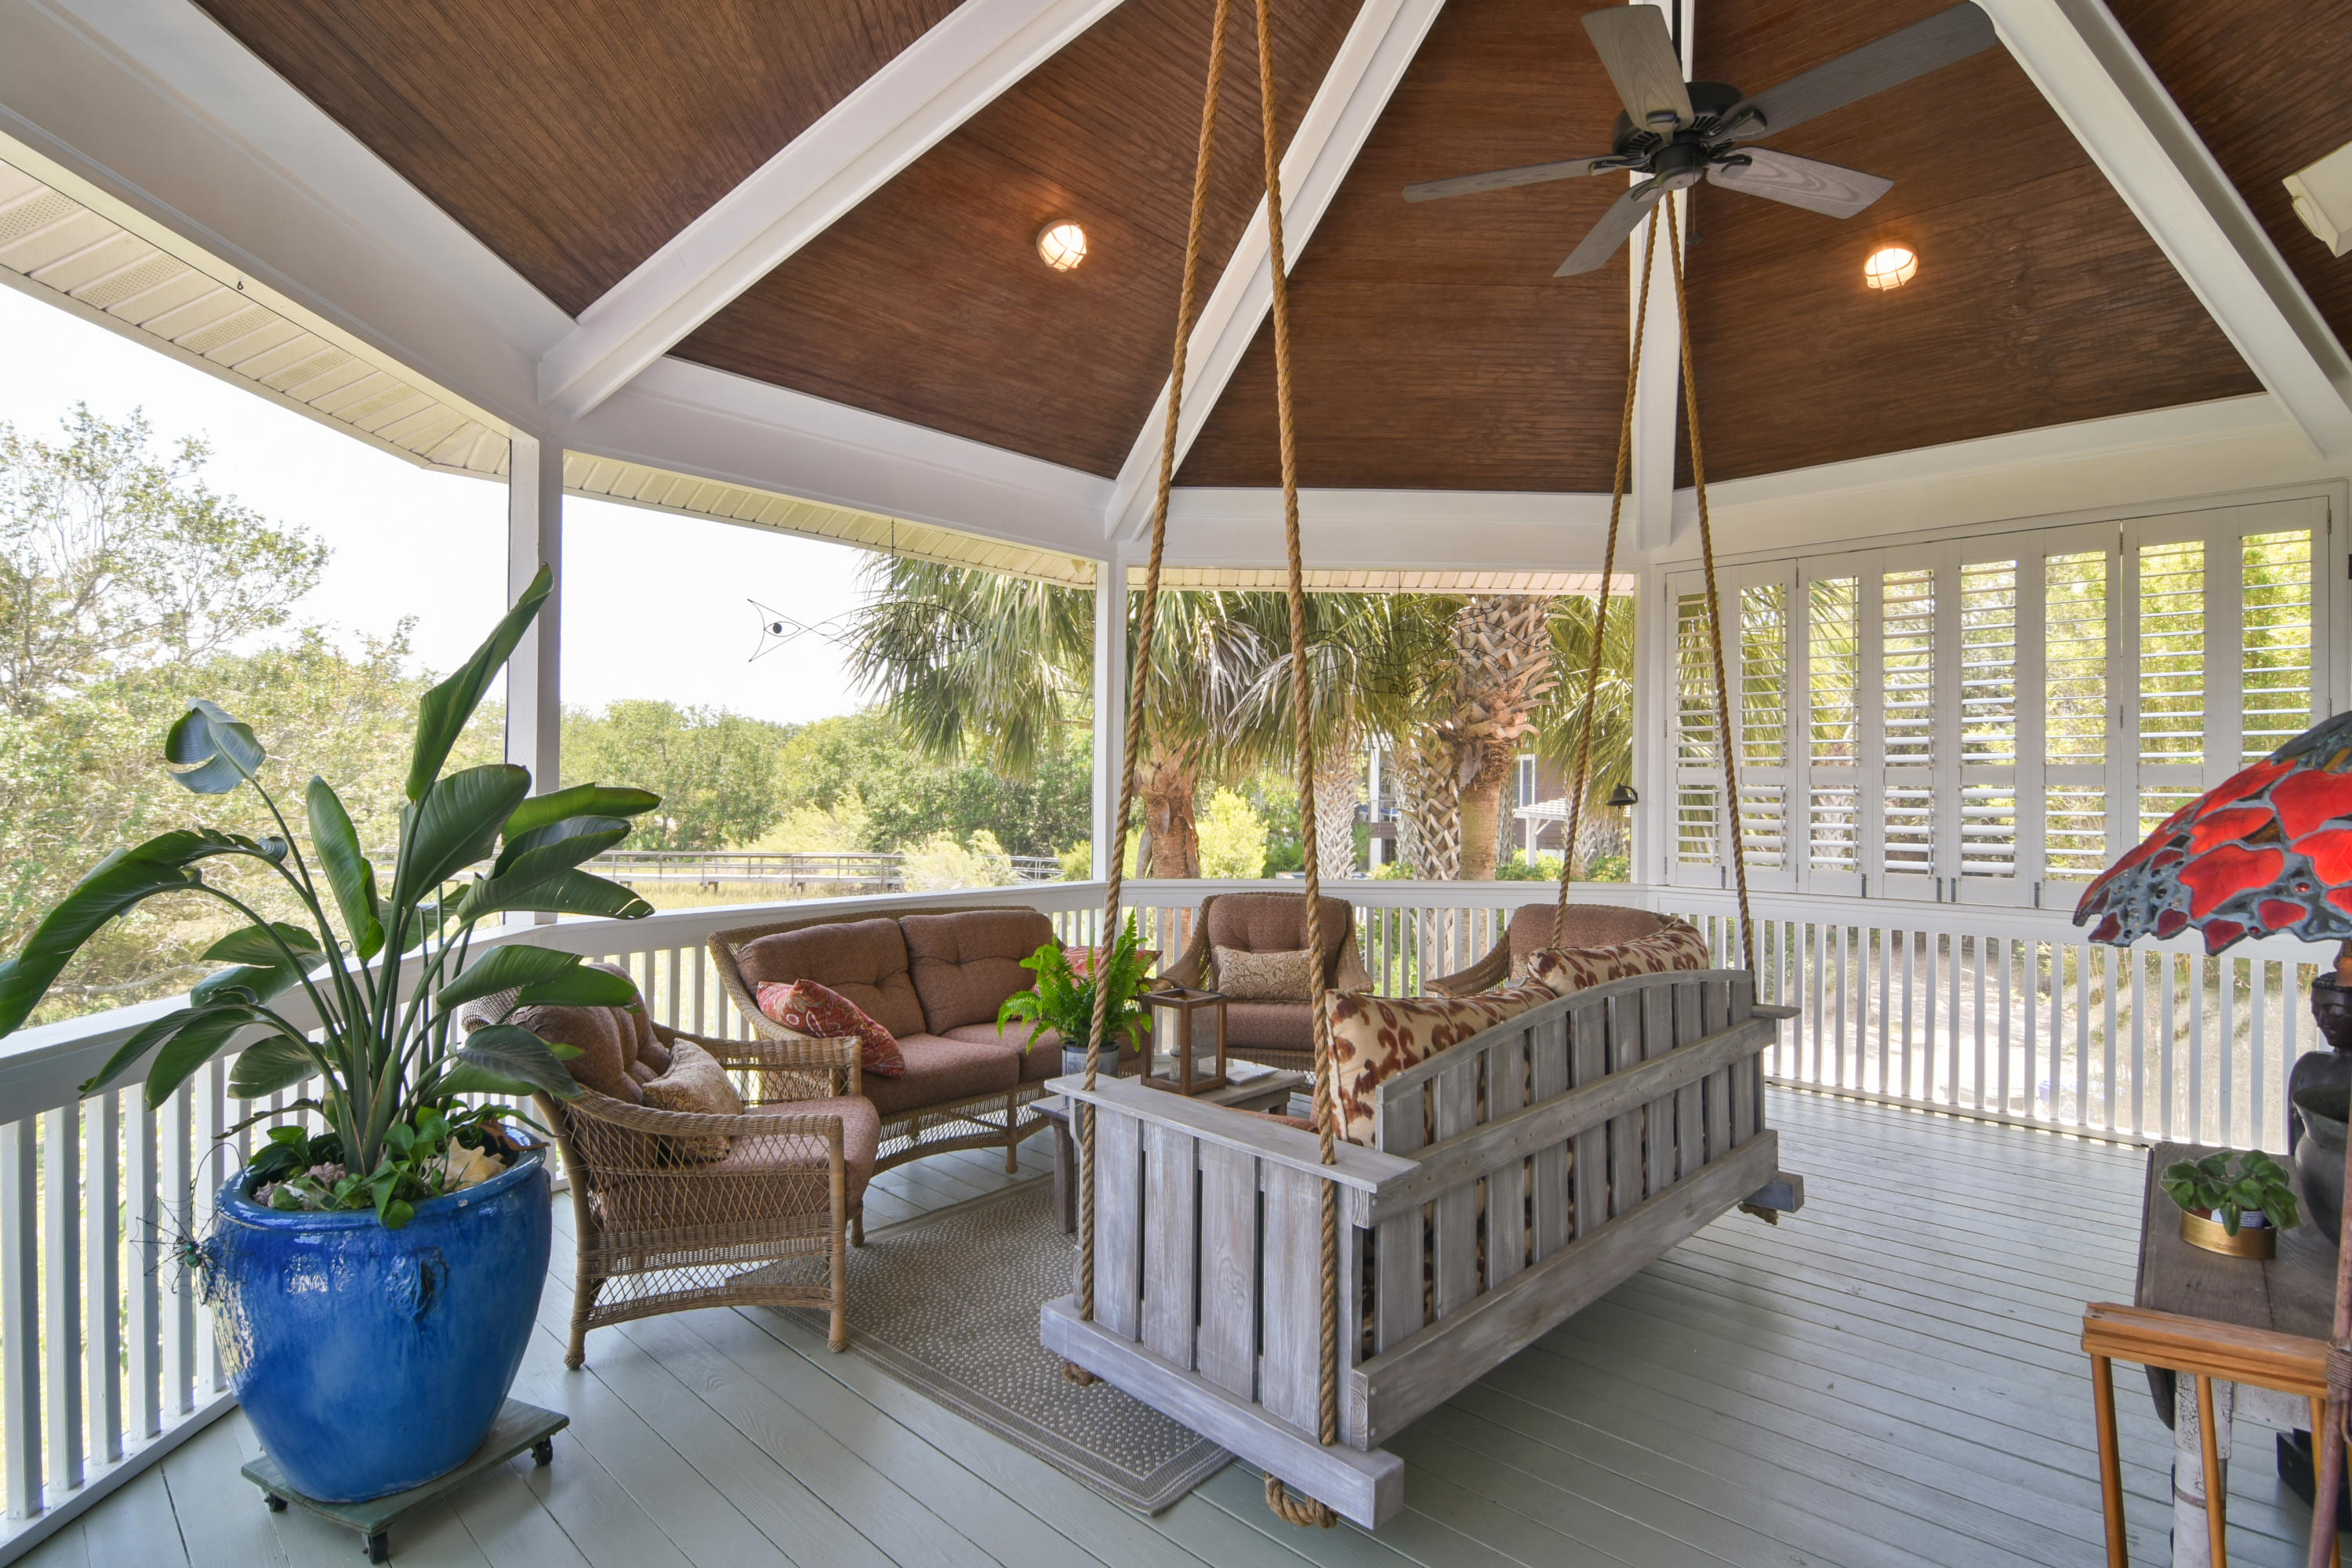 Sullivans Island Homes For Sale - 405 Station 12, Sullivans Island, SC - 9